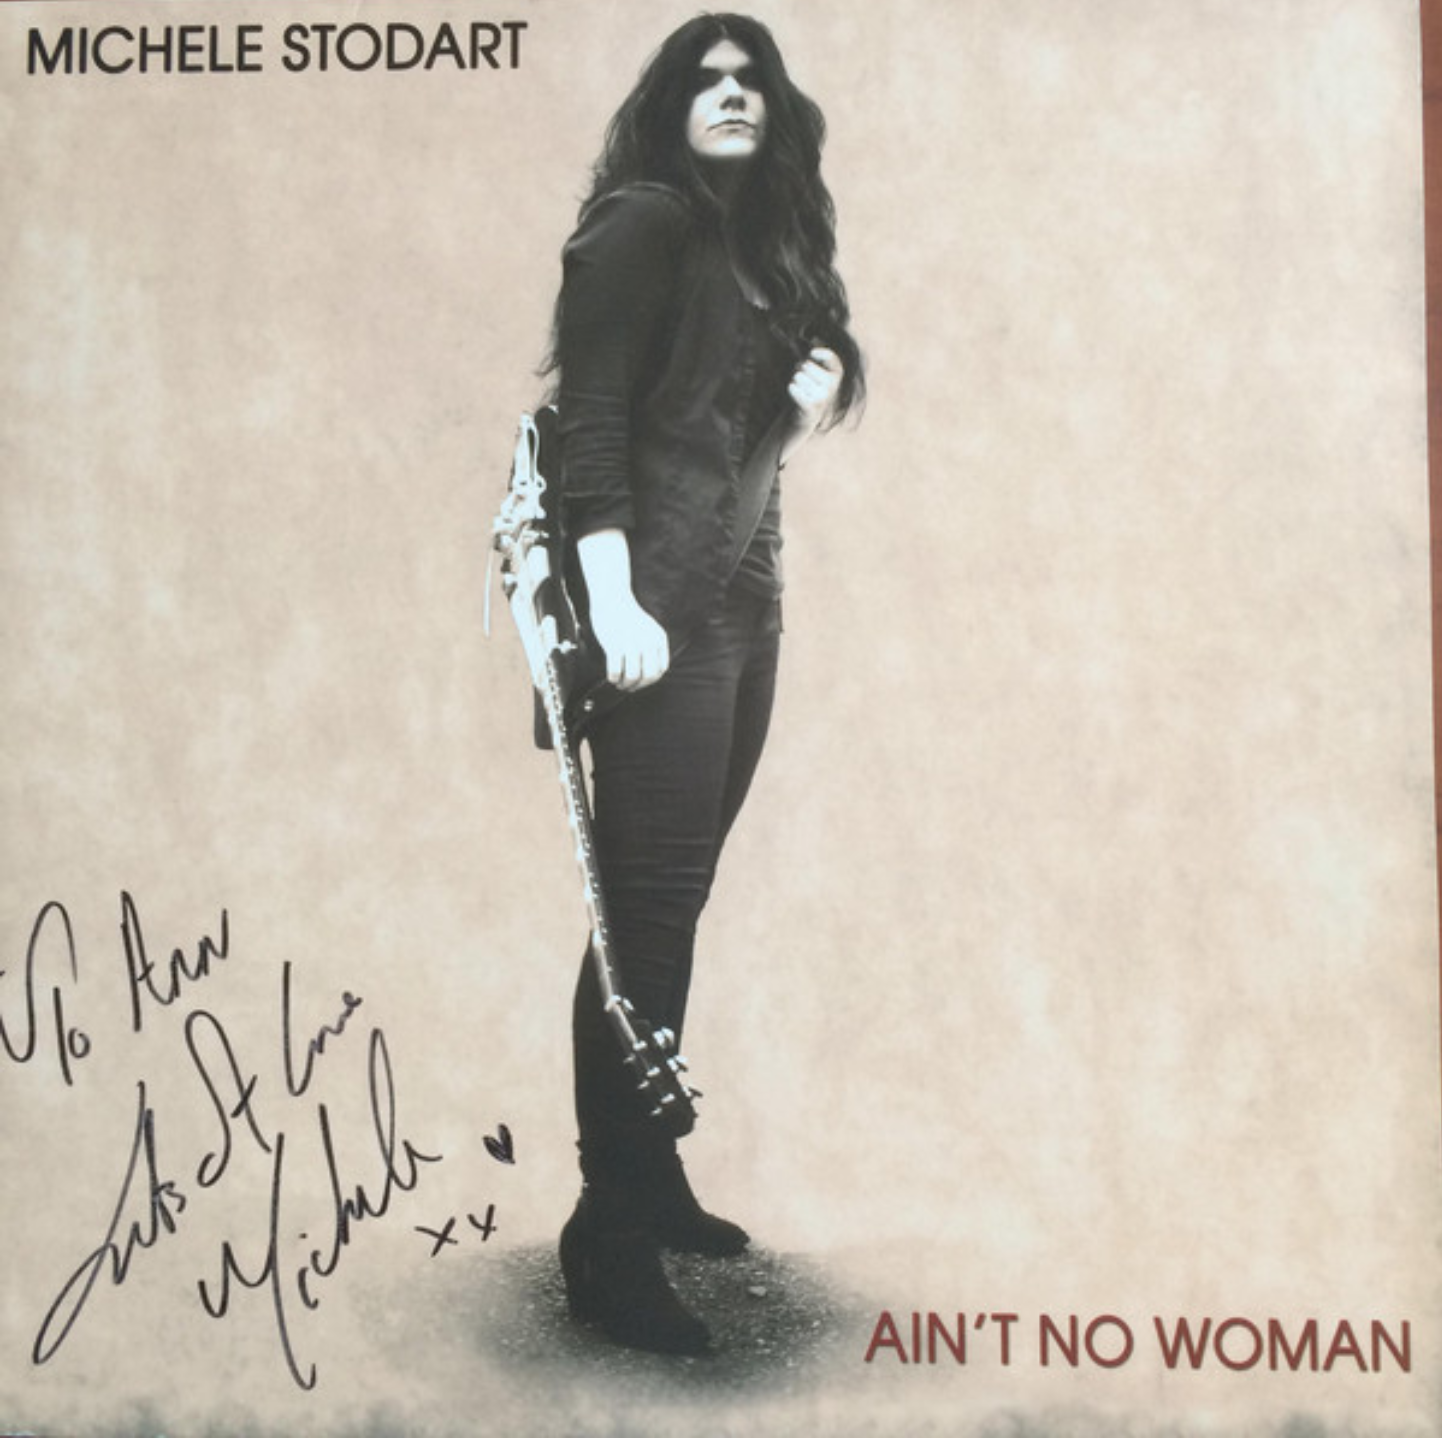 Michele Stodart standing with guitar on vinyl single cover